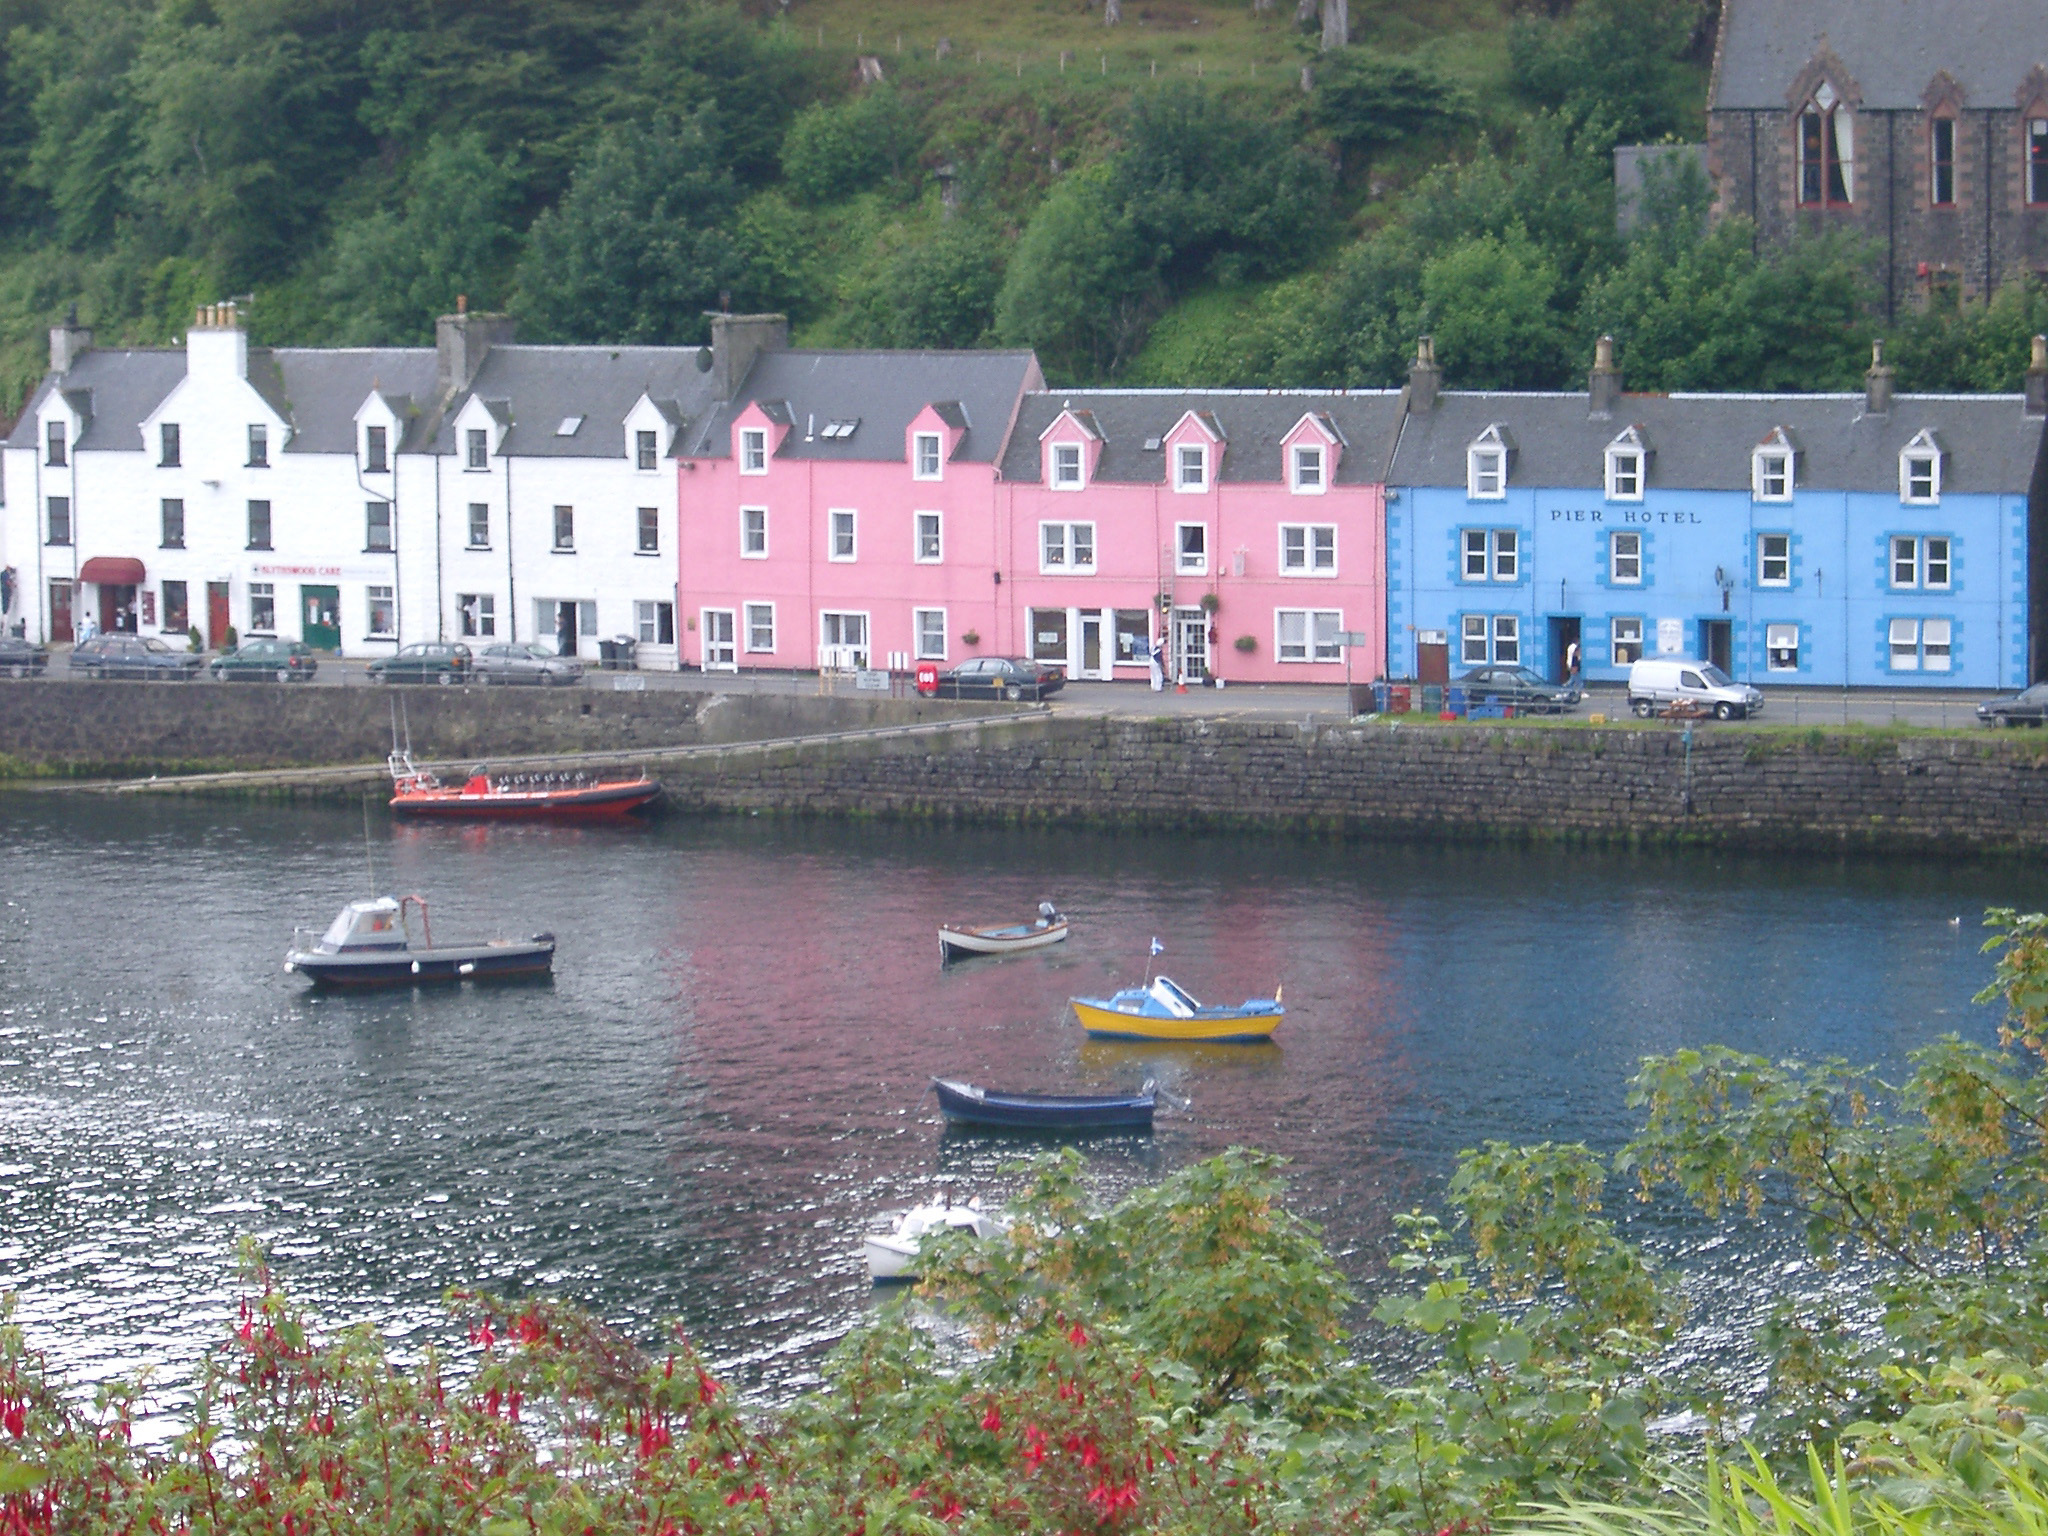 Colorful terraced houses and hotel on the waterfront overlooking fishing boats on the water in Portree, Isle of Skye